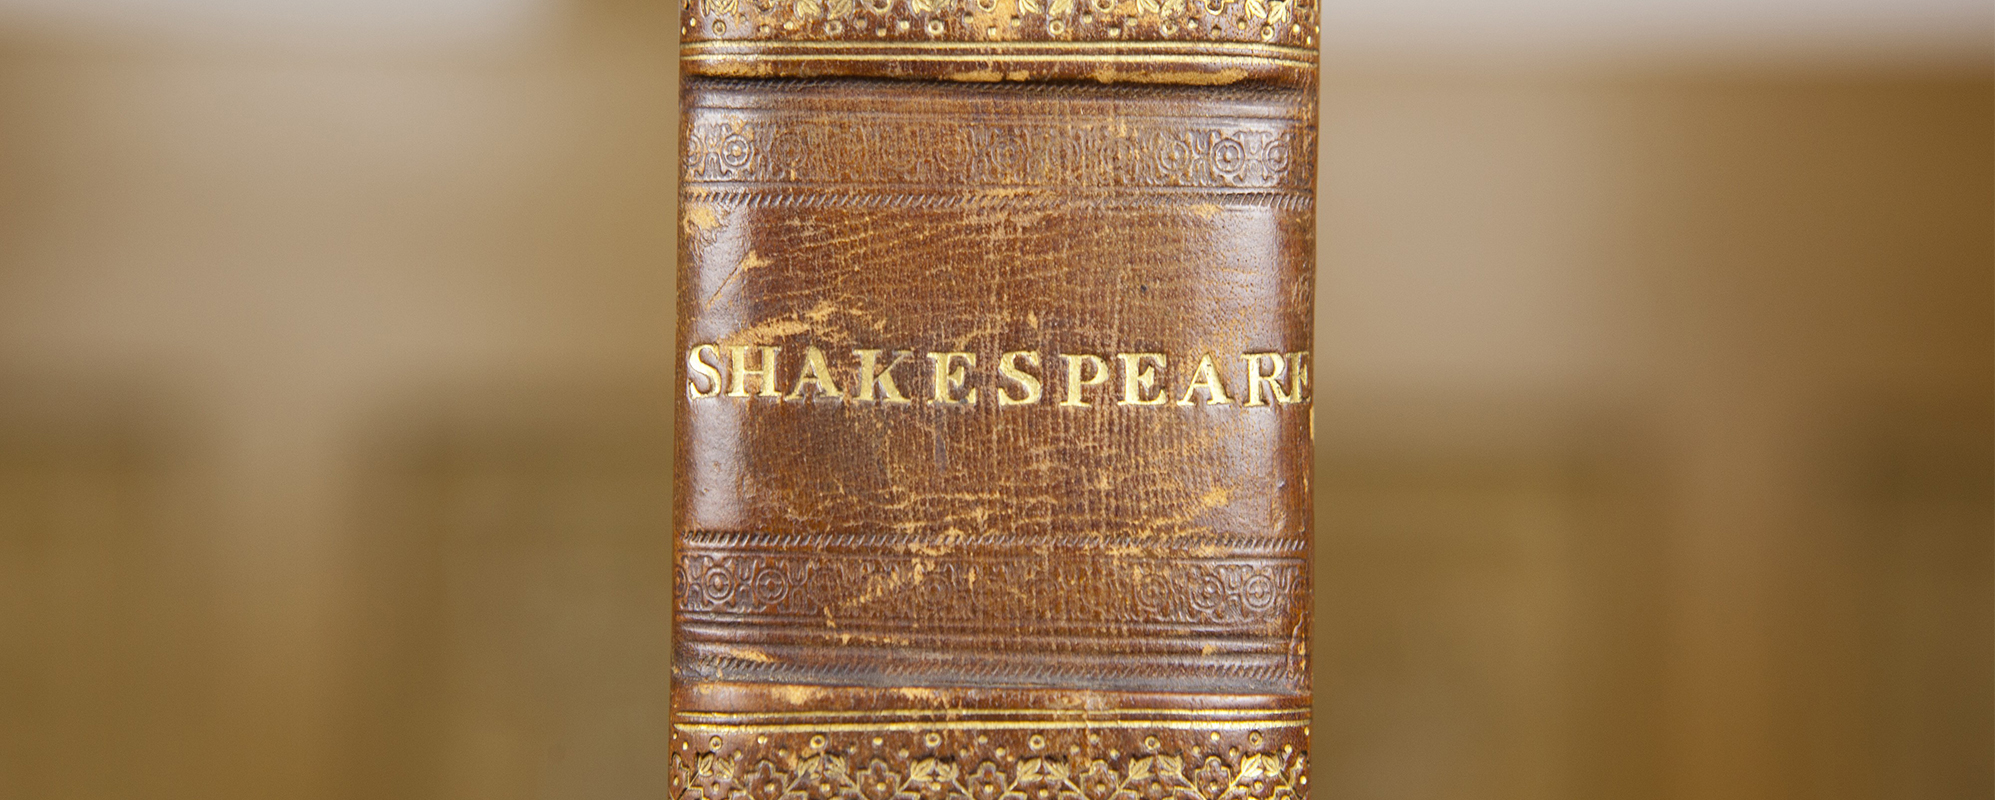 The spine of a book with the word Shakespeare written on it